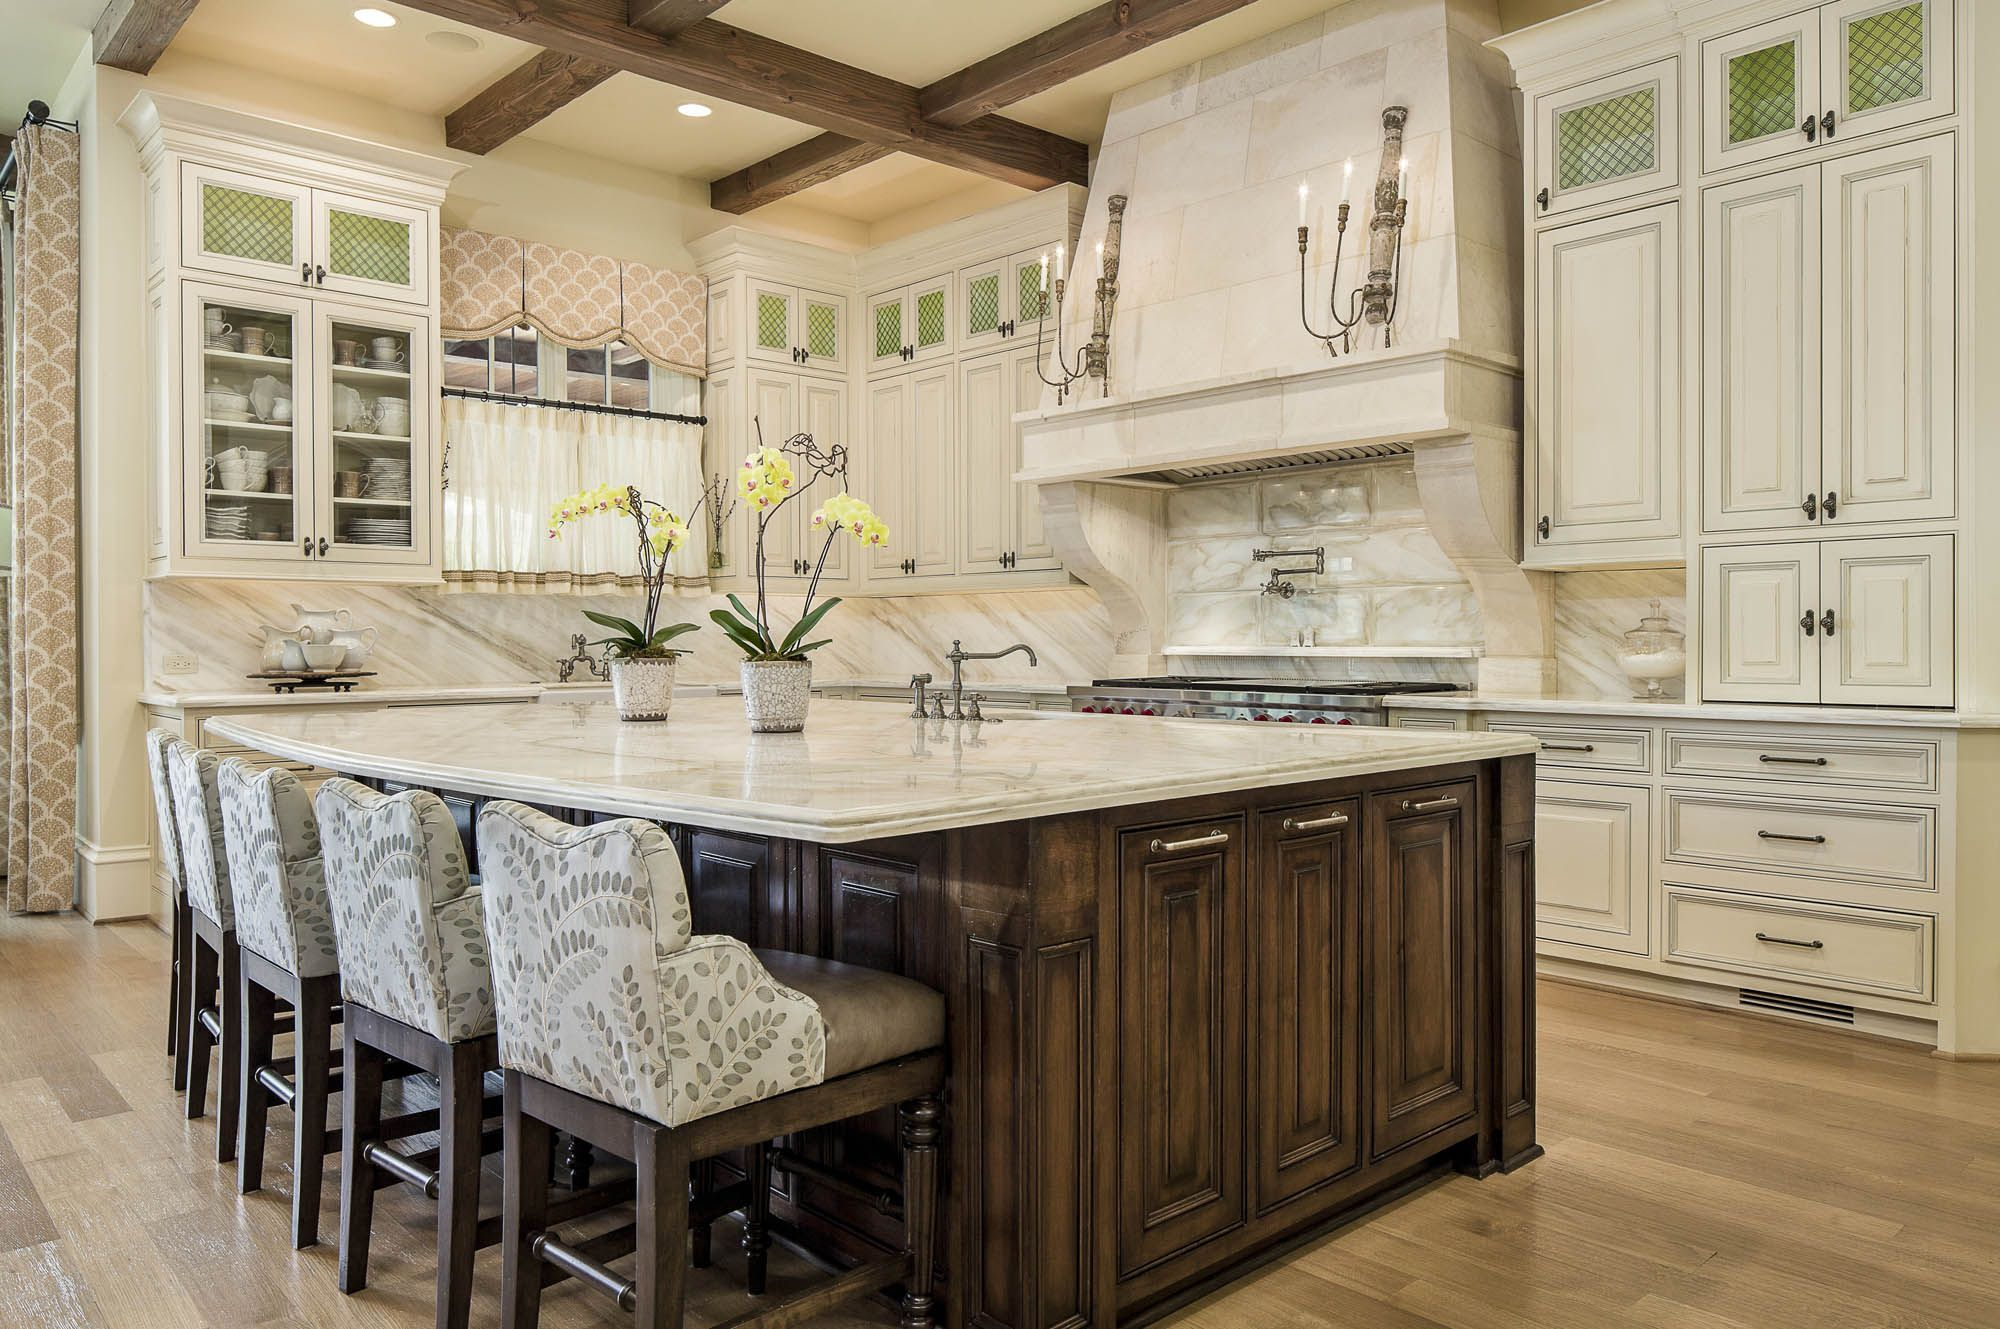 Kitchens | Platinum Series Homes by Mark Molthan | Amazing kitchens ...